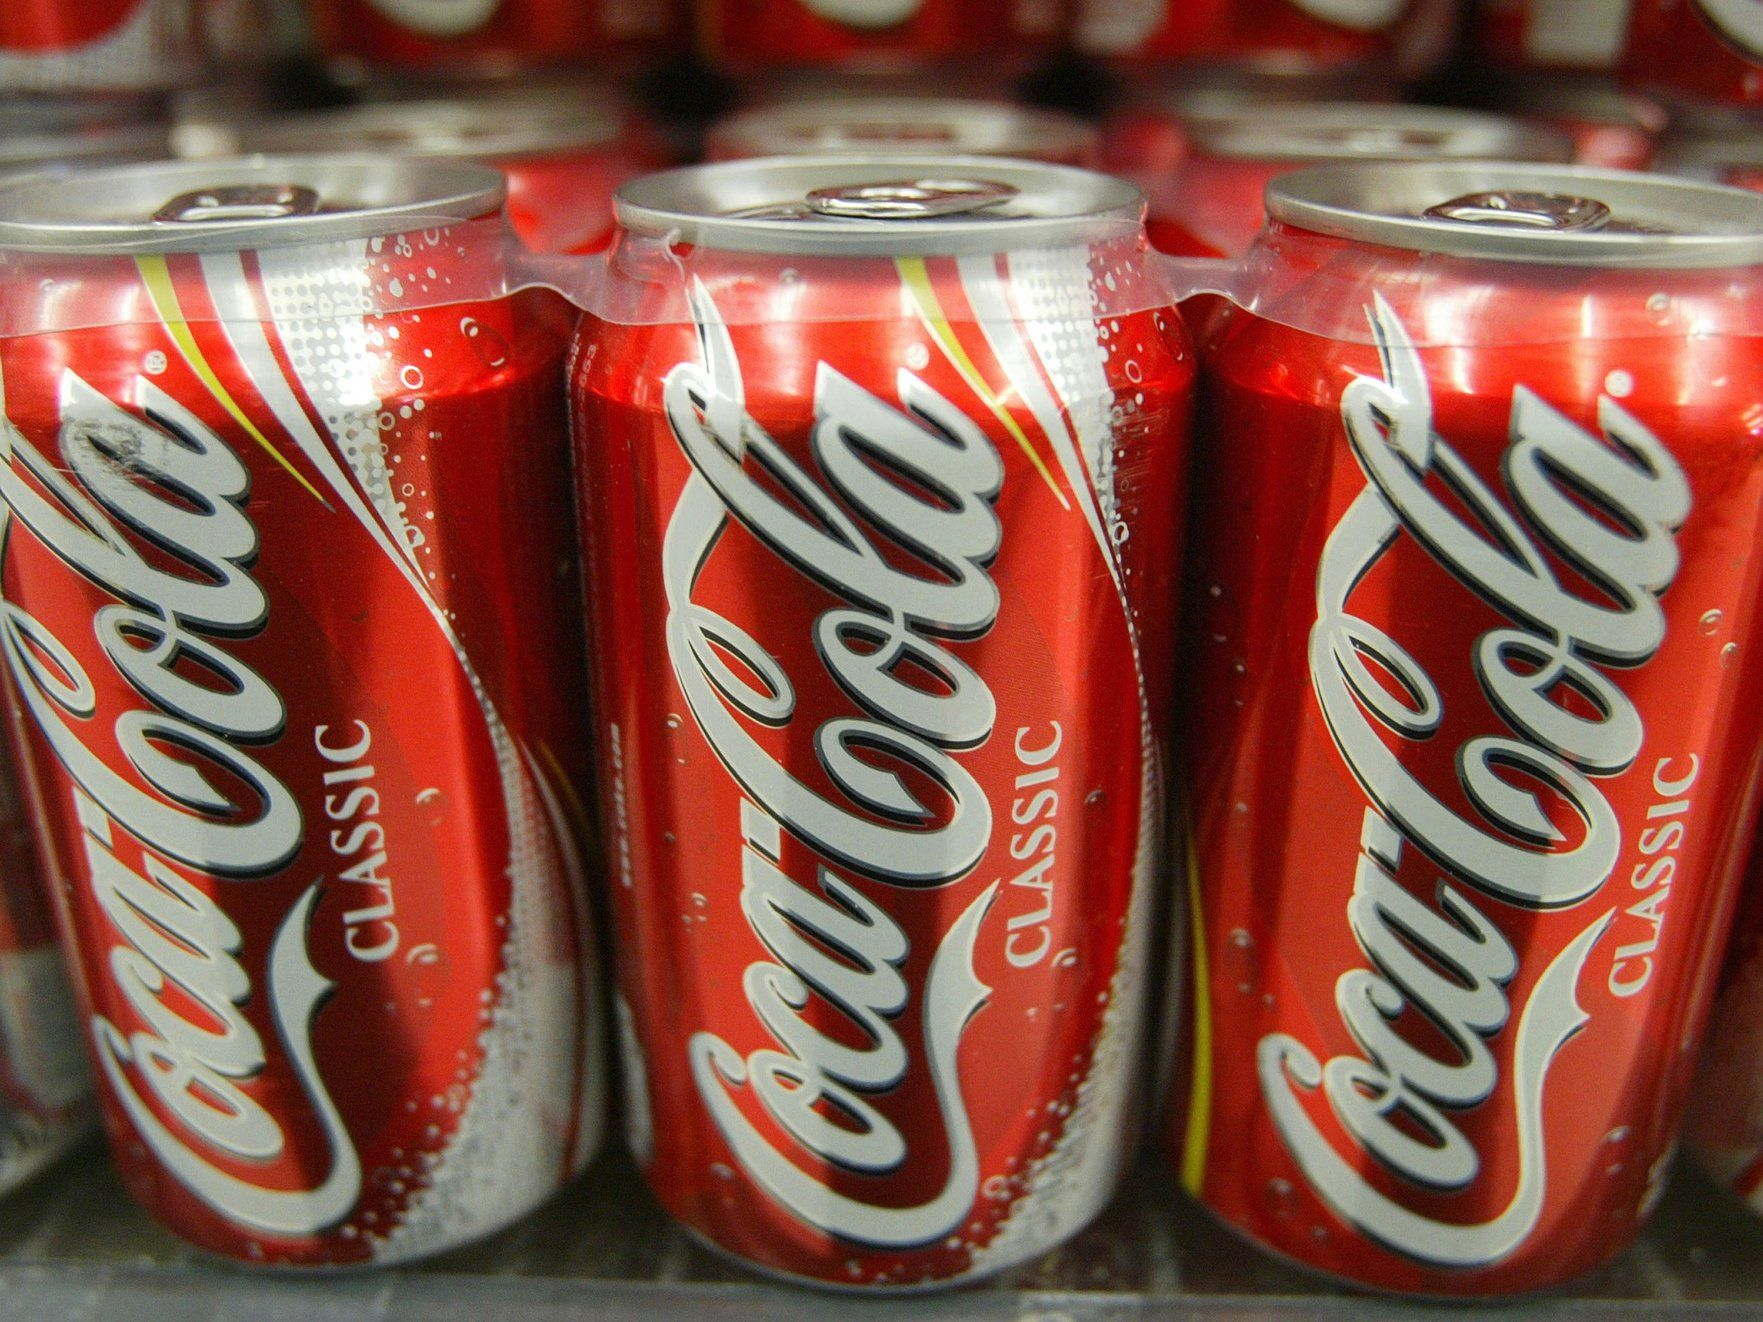 Soda sales crash as consumers chose healthier options (KO PEP)